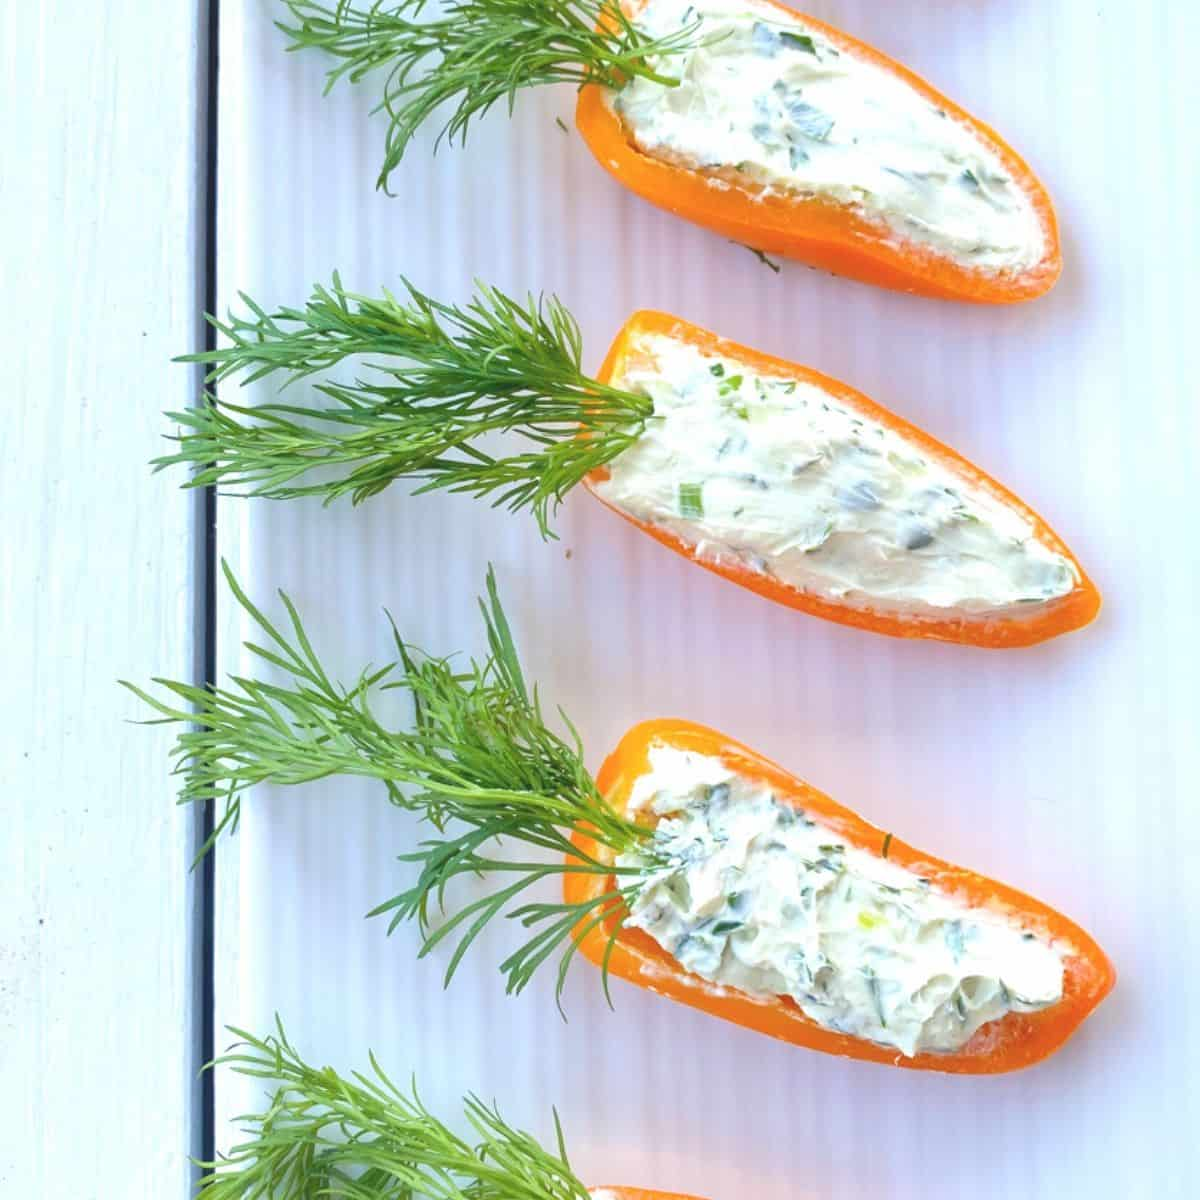 orange mini peppers stuffed with cream cheese on plate